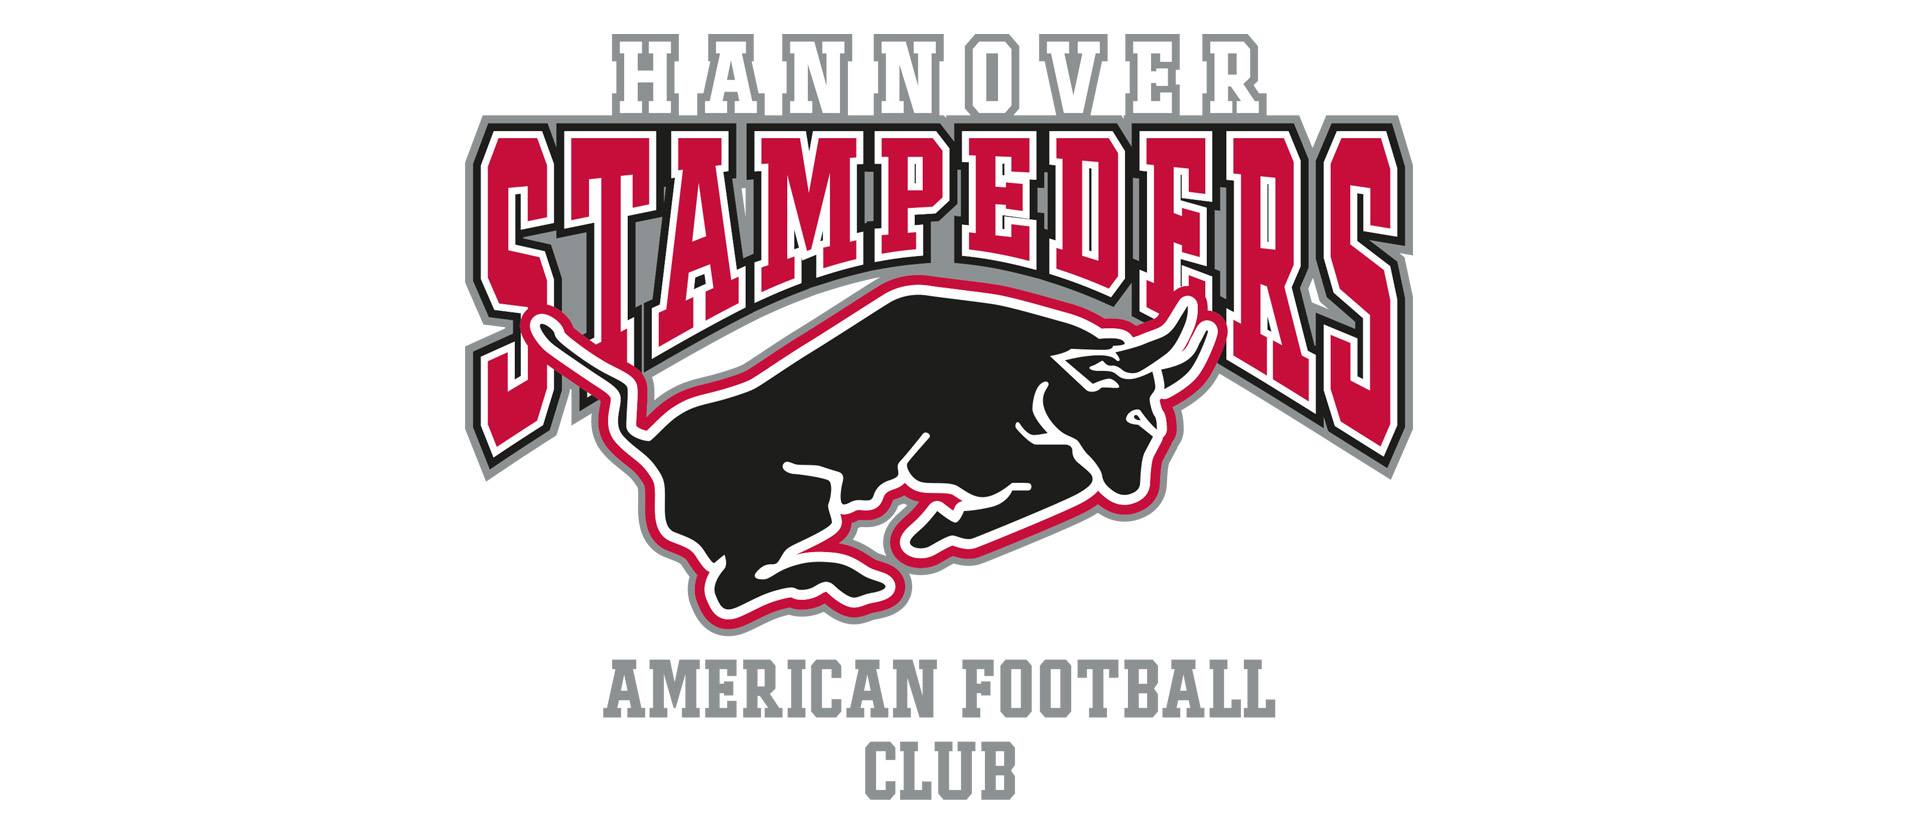 american football hannover